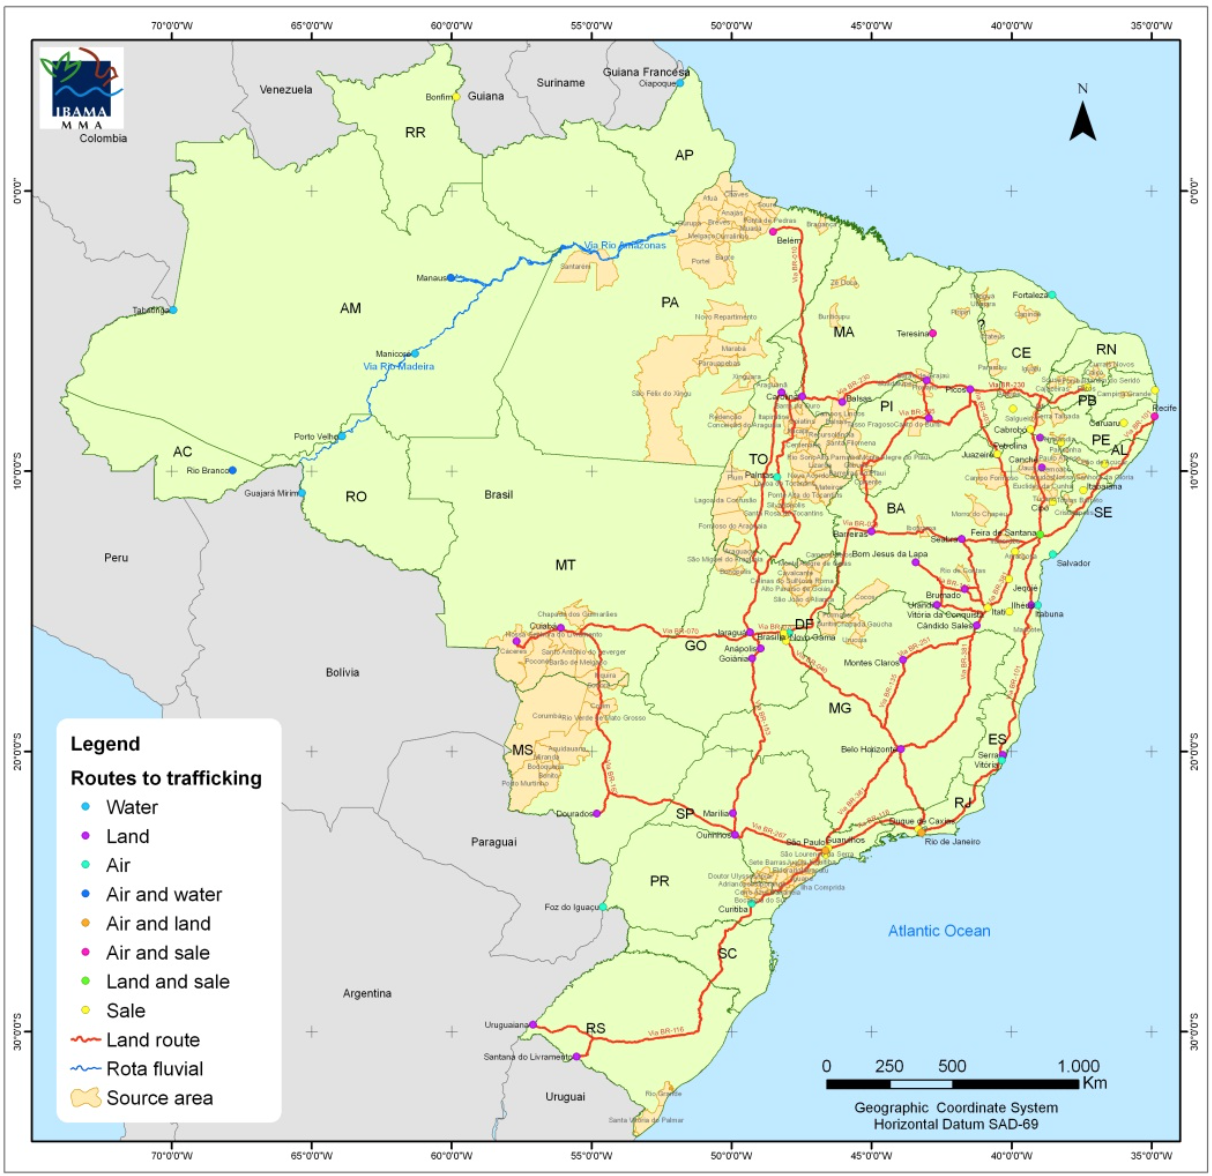 """Main routes for the wild animals trafficking in Brazil. From: Biodiversity Enrichment in a Diverse World"""" (published under creative commons (https://www.intechopen.com/books/biodiversity-enrichment-in-a-diverse-world/efforts-to-combat-wild-animals-trafficking-in-brazil; map in this chapter. P. 433: http://cdn.intechopen.com/pdfs-wm/38670.pdf)"""